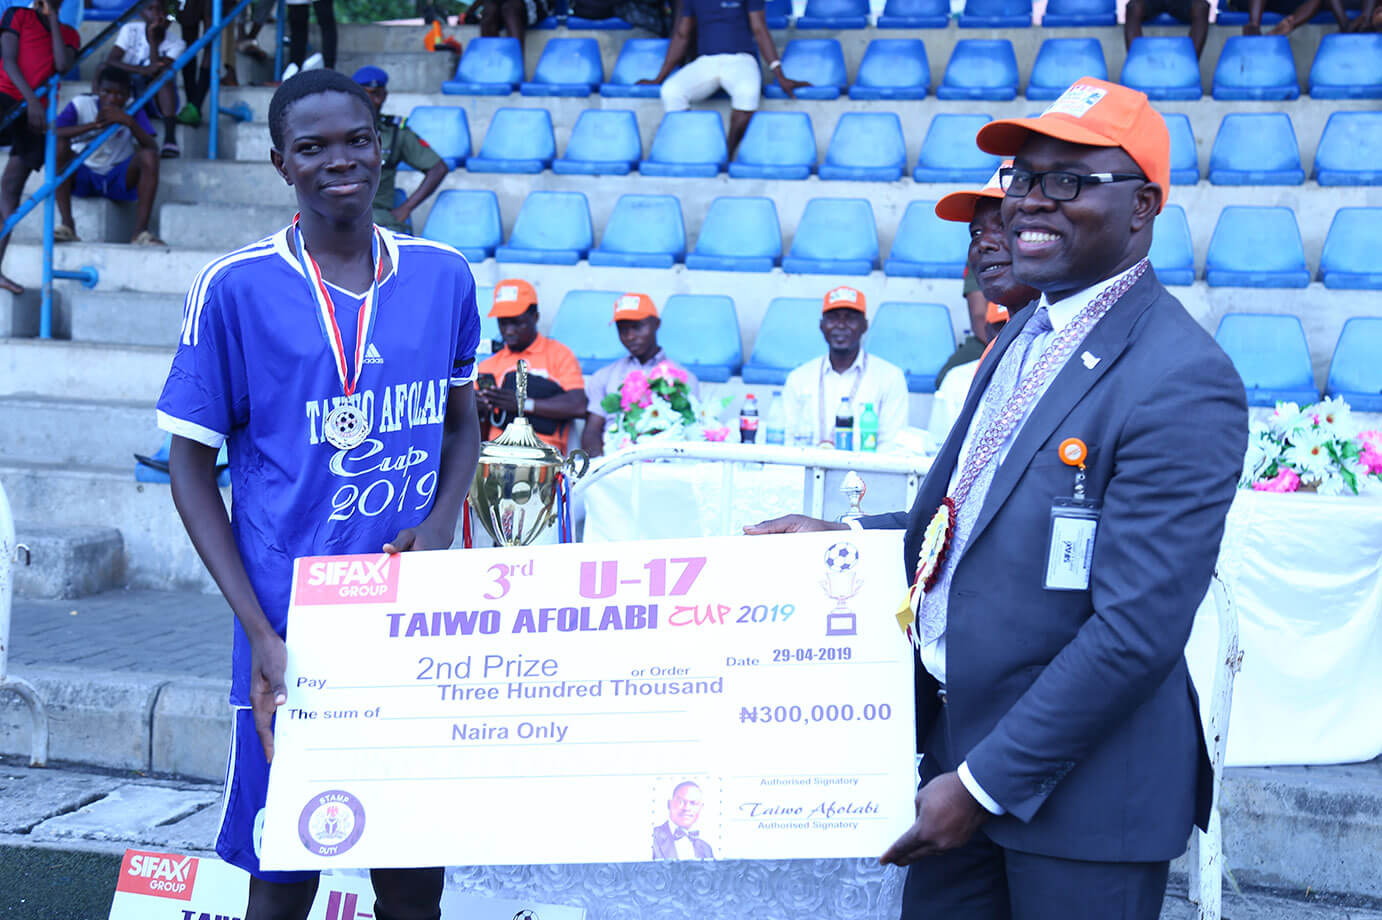 3rd Edition of the Taiwo Afolabi U-17 Football Competition